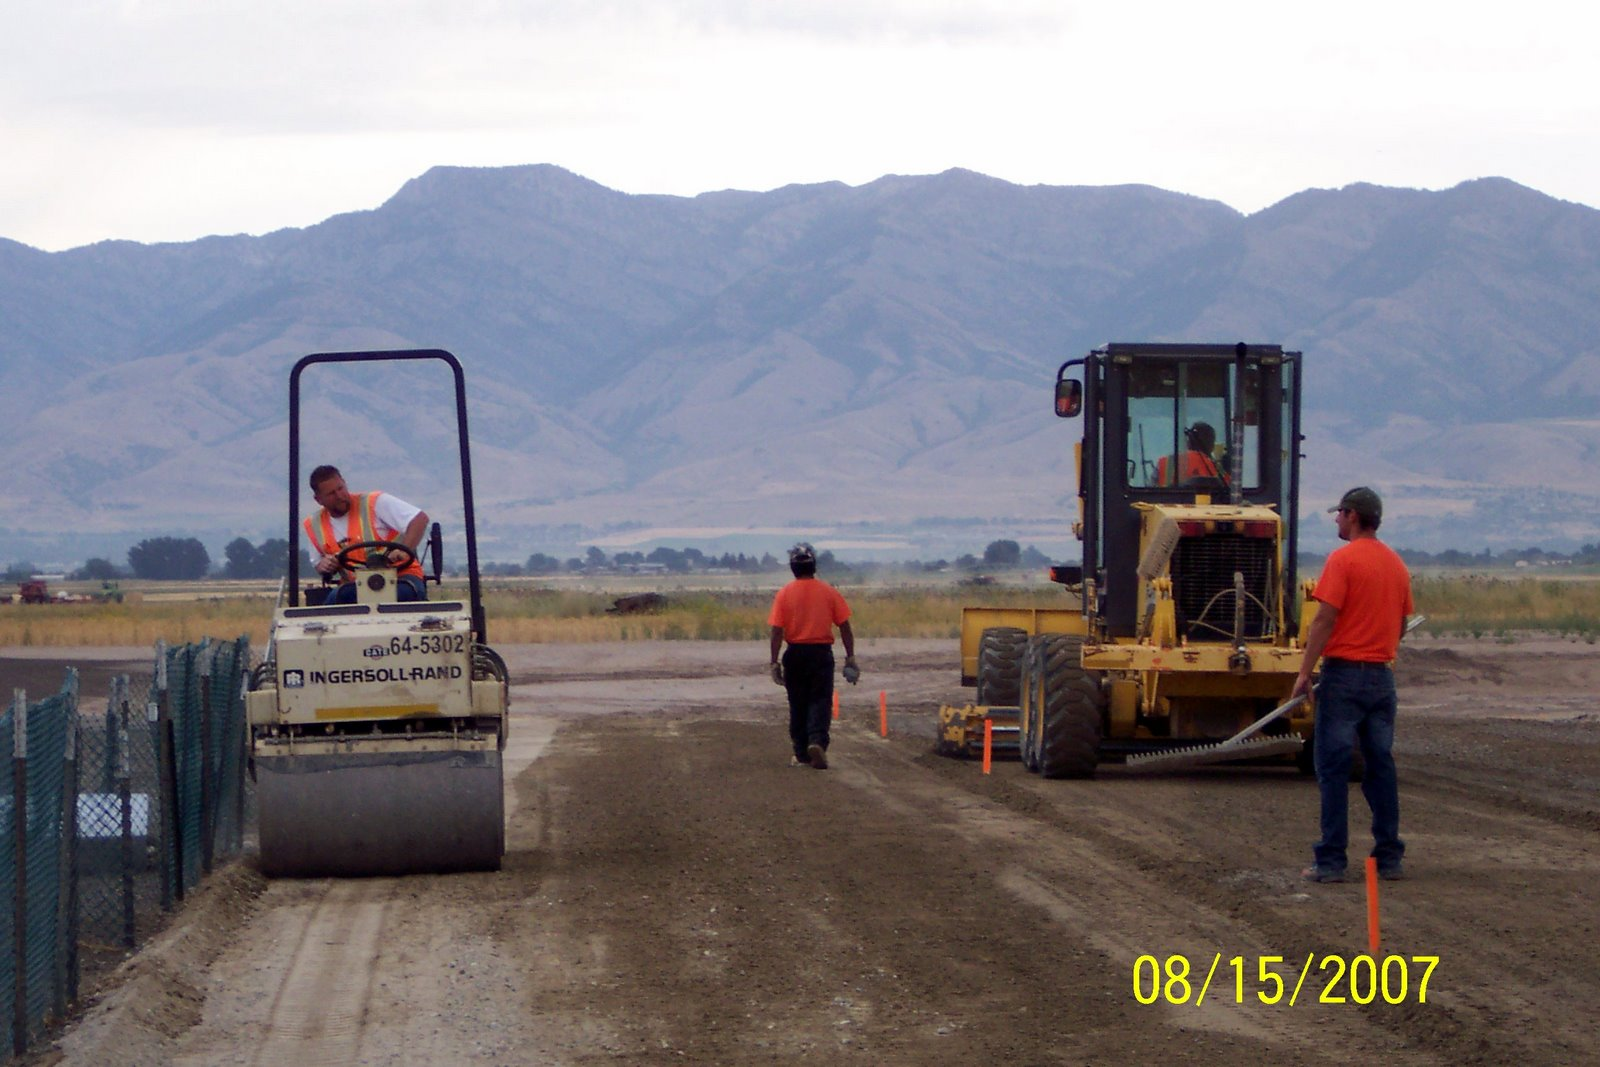 MORE ROLLING AND GRADING IN THE PITTING AREA.